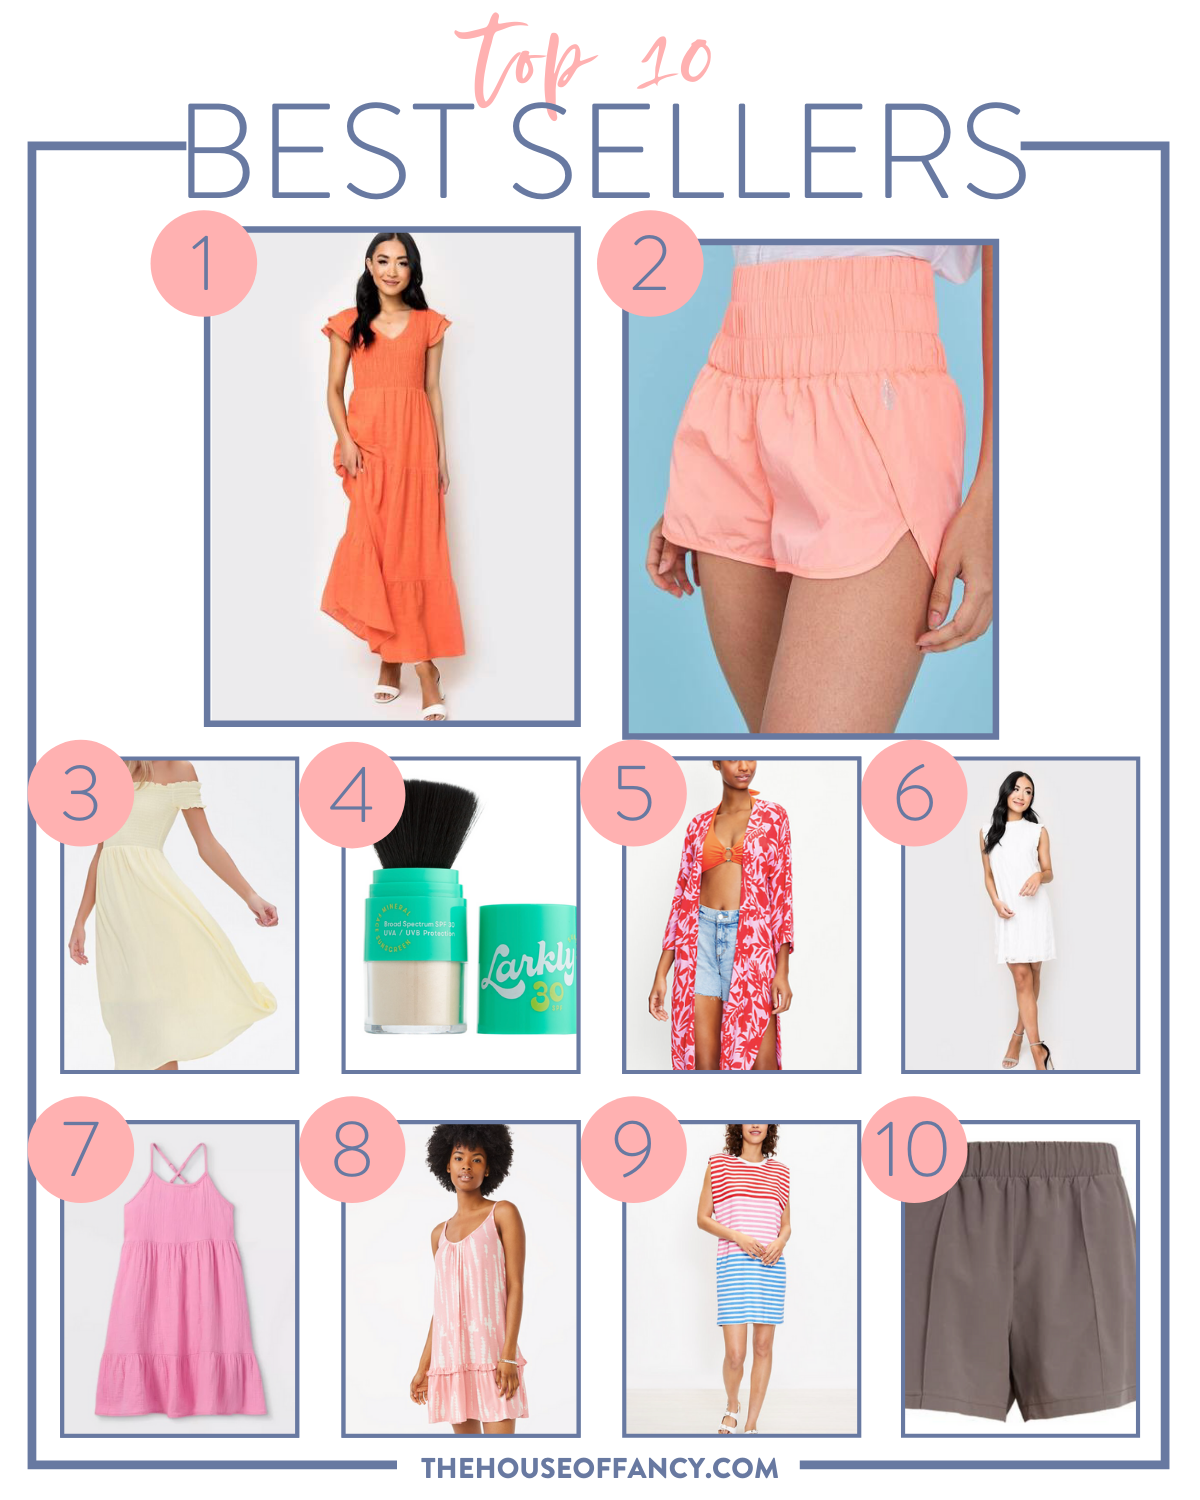 Best Sellers by poplar Houston fashion blog, The House of Fashion: collage image of orange flutter sleeve maxi dress, pink smock waist shorts, yellow smock off the shoulder maxi dress, darkly highlighter, pink tropical print kimono, and white sleeveless dress.